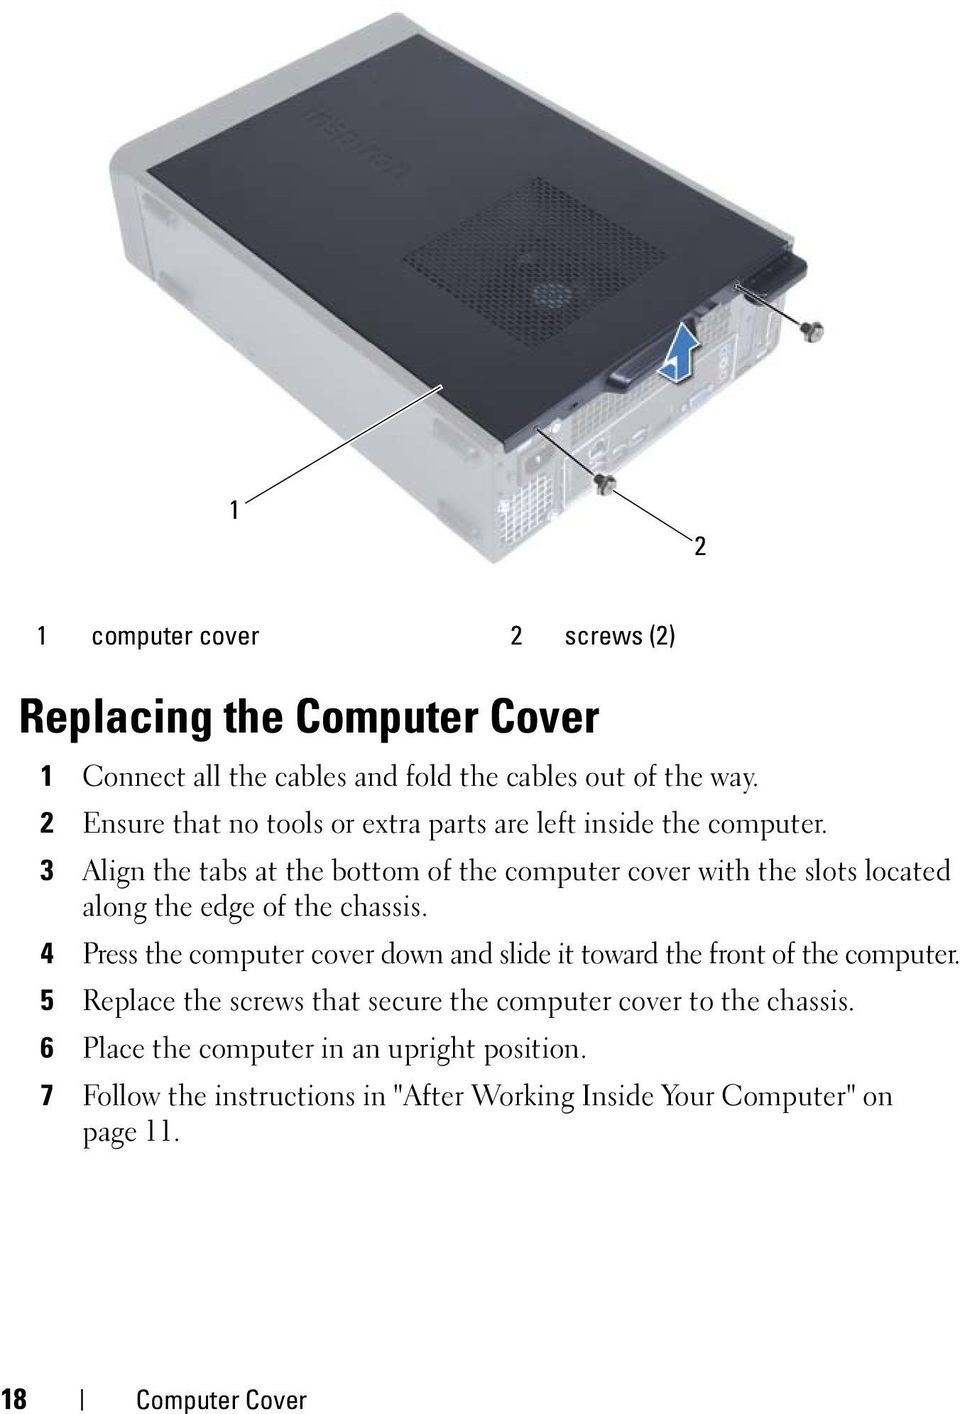 Dell Inspiron 660s Owner s Manual - PDF